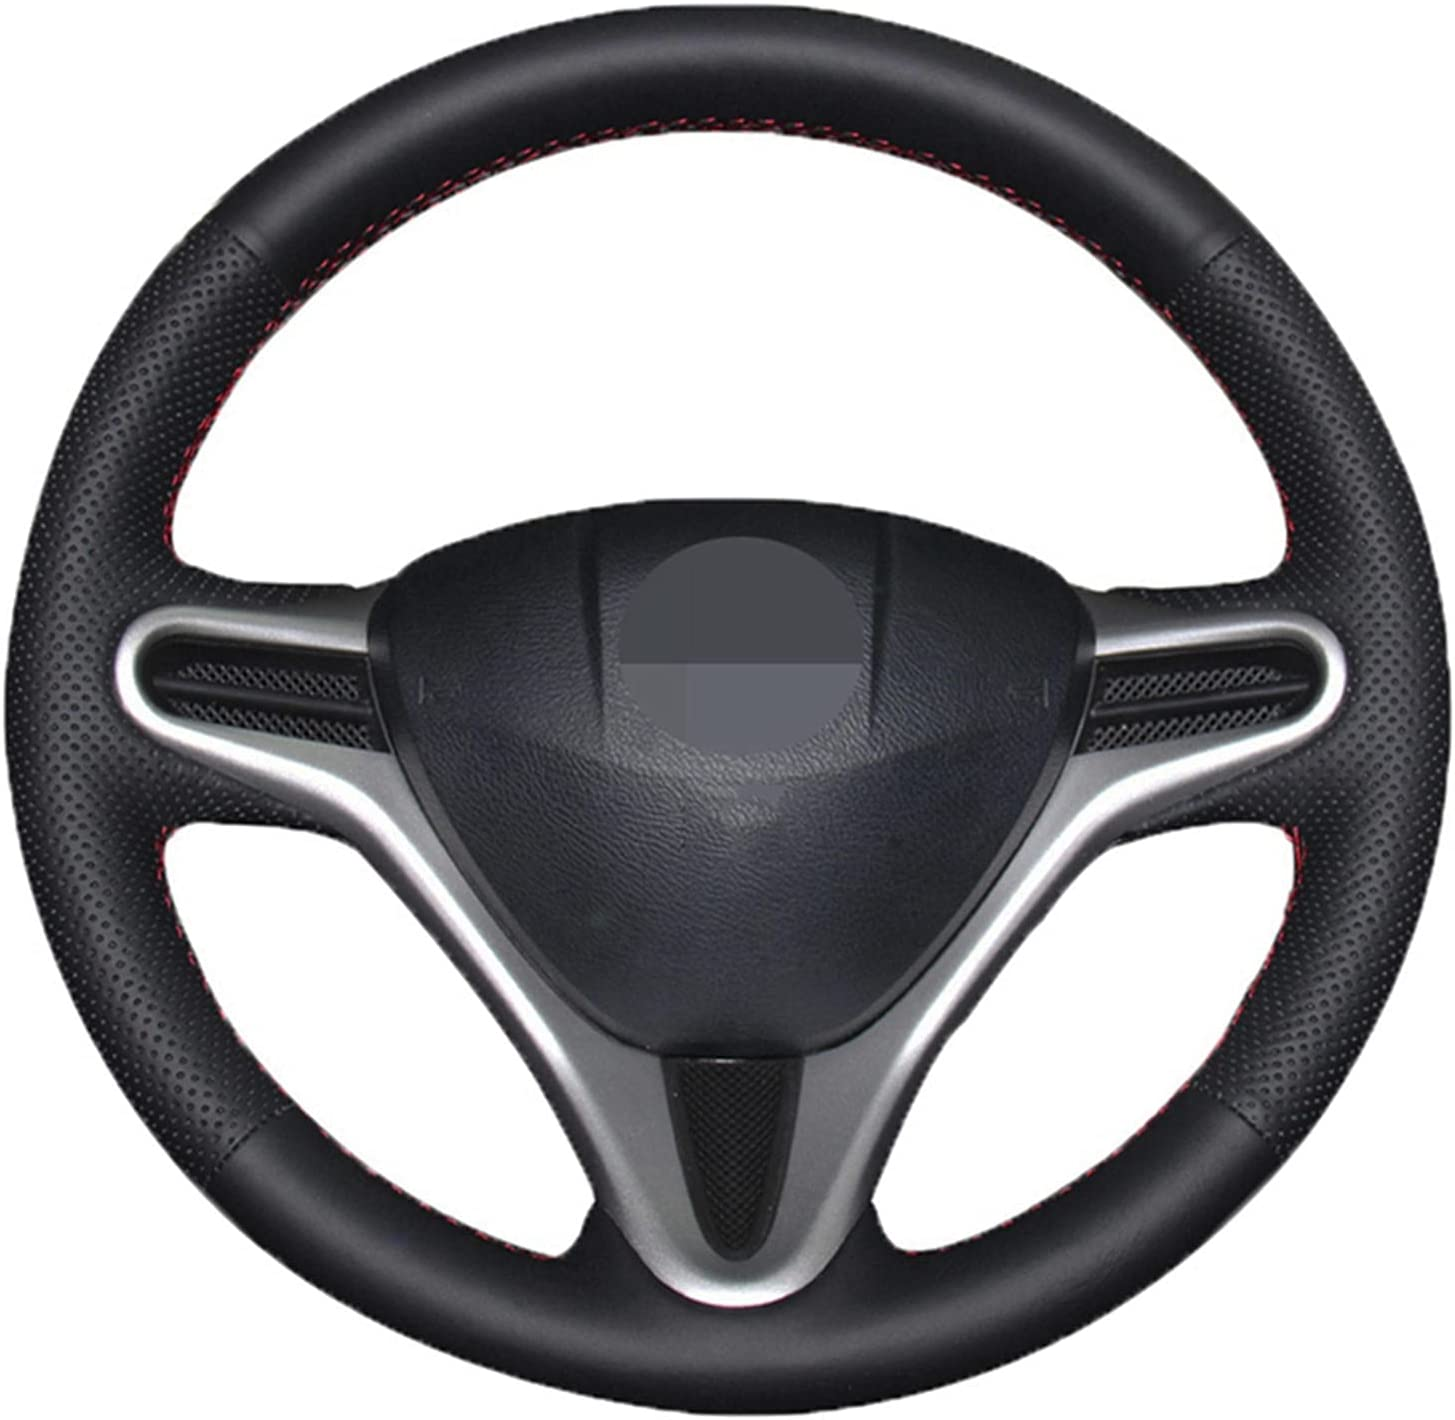 GSELKND Fixed price for Max 61% OFF sale Hand-Sewn Steering Wheel Cover Fit Honda C Suitable